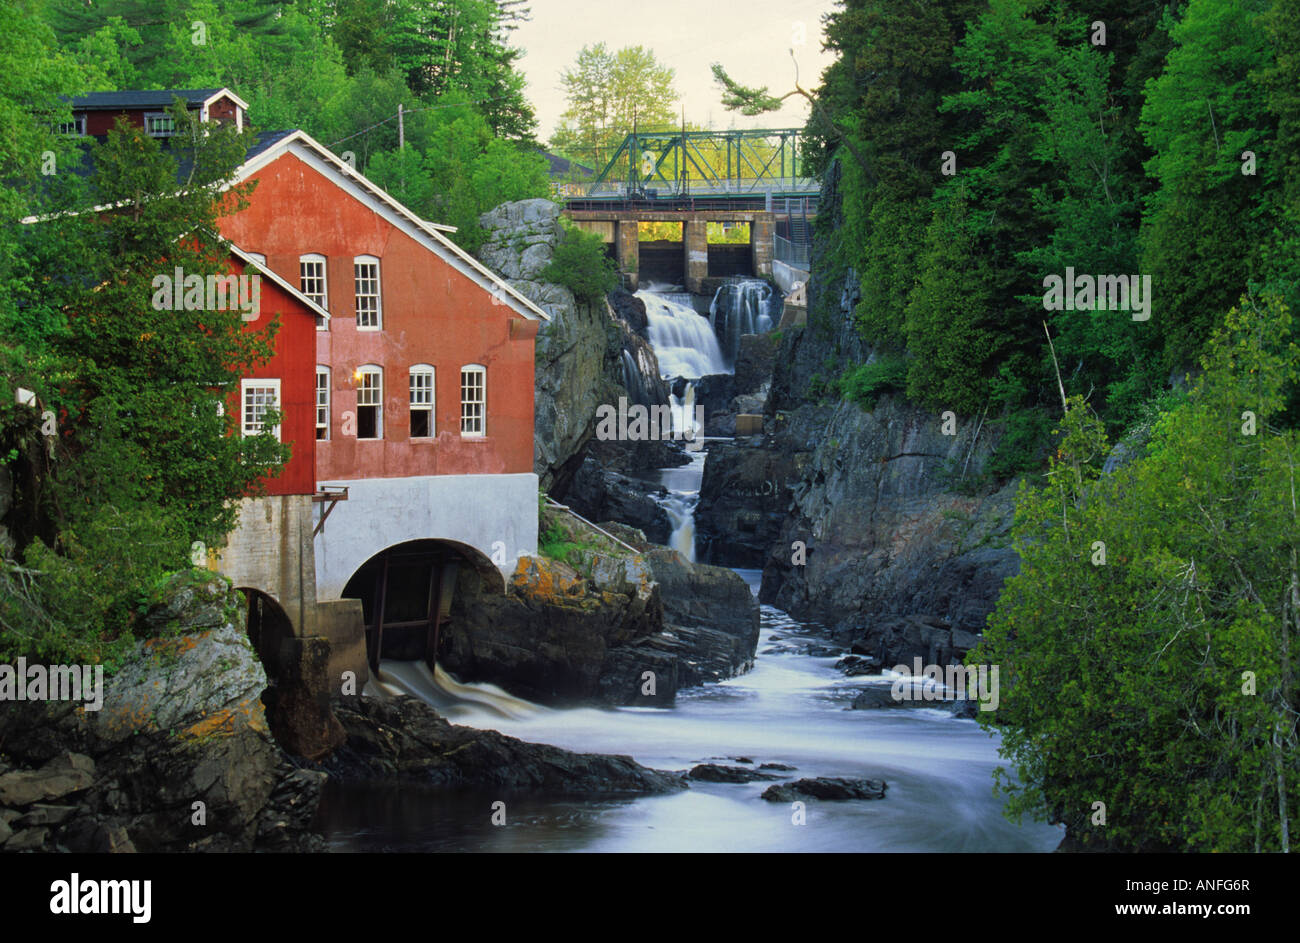 Mill and waterfall, St. George, New Brunswick,  Canada - Stock Image